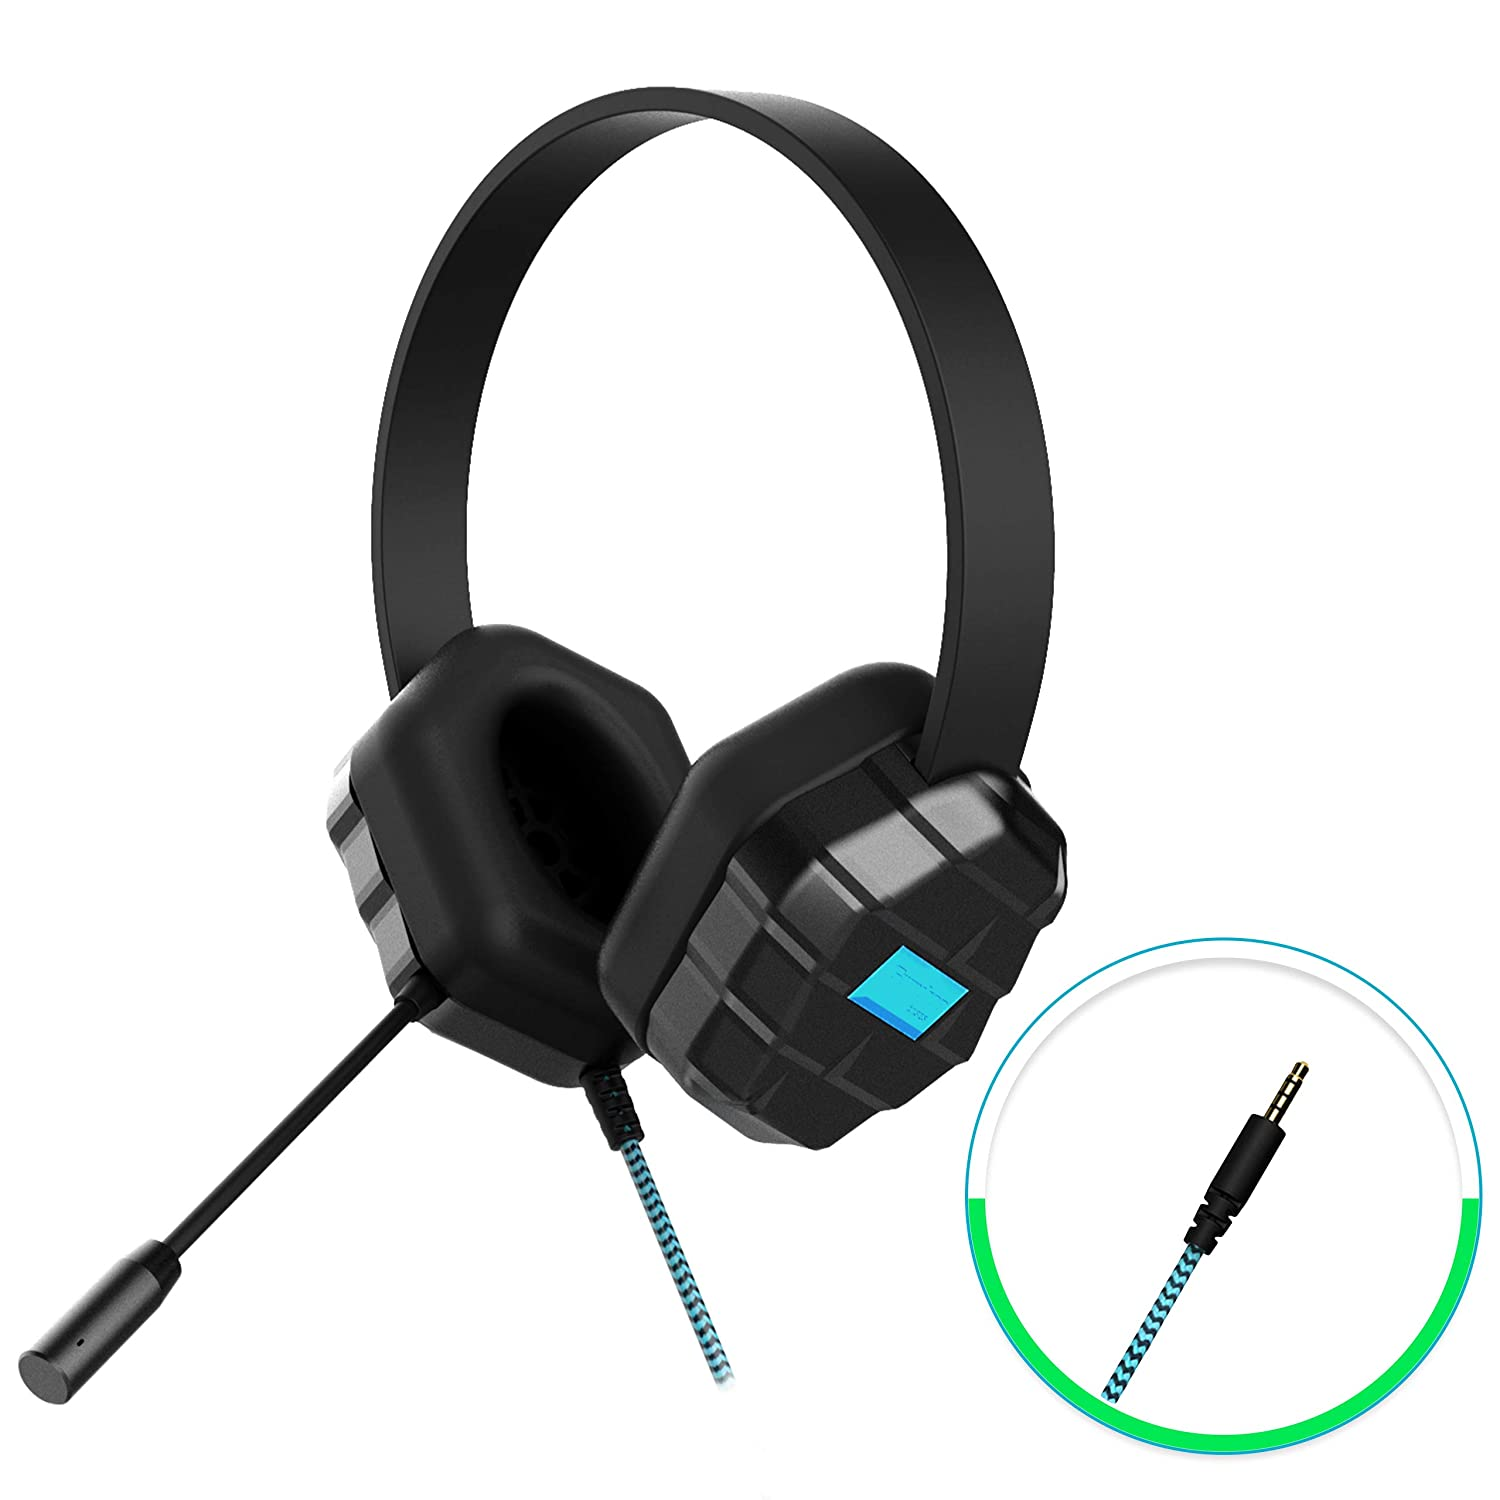 GumDrop Droptech B1 Over-Ear Headset with Chew-Proof Cord, Built-in Mic, 3.5mm Audio Jack for Classroom, Students, Kids -Black, Rugged, Plug Play, Small